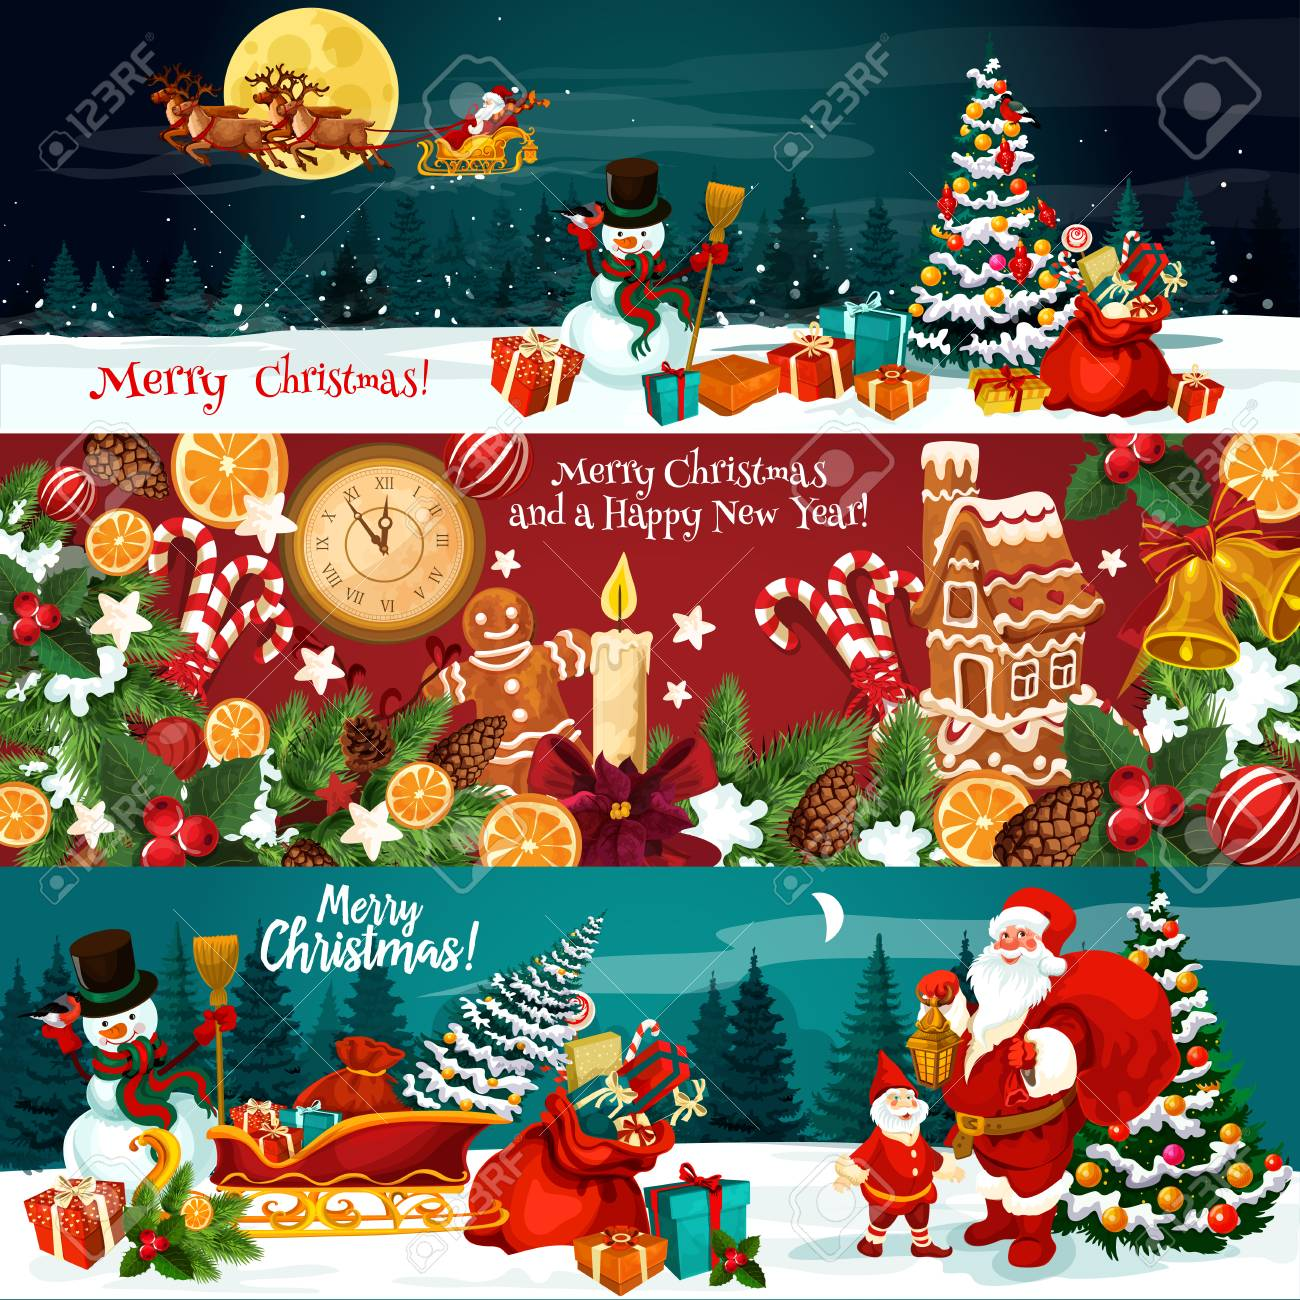 Christmas holiday banner of Xmas gift and New Year festive ornaments. Snowman, Santa and Xmas tree with bell, ribbon bow, holly berry and snowflake, candy, cookie and clock for greeting card design - 110331019